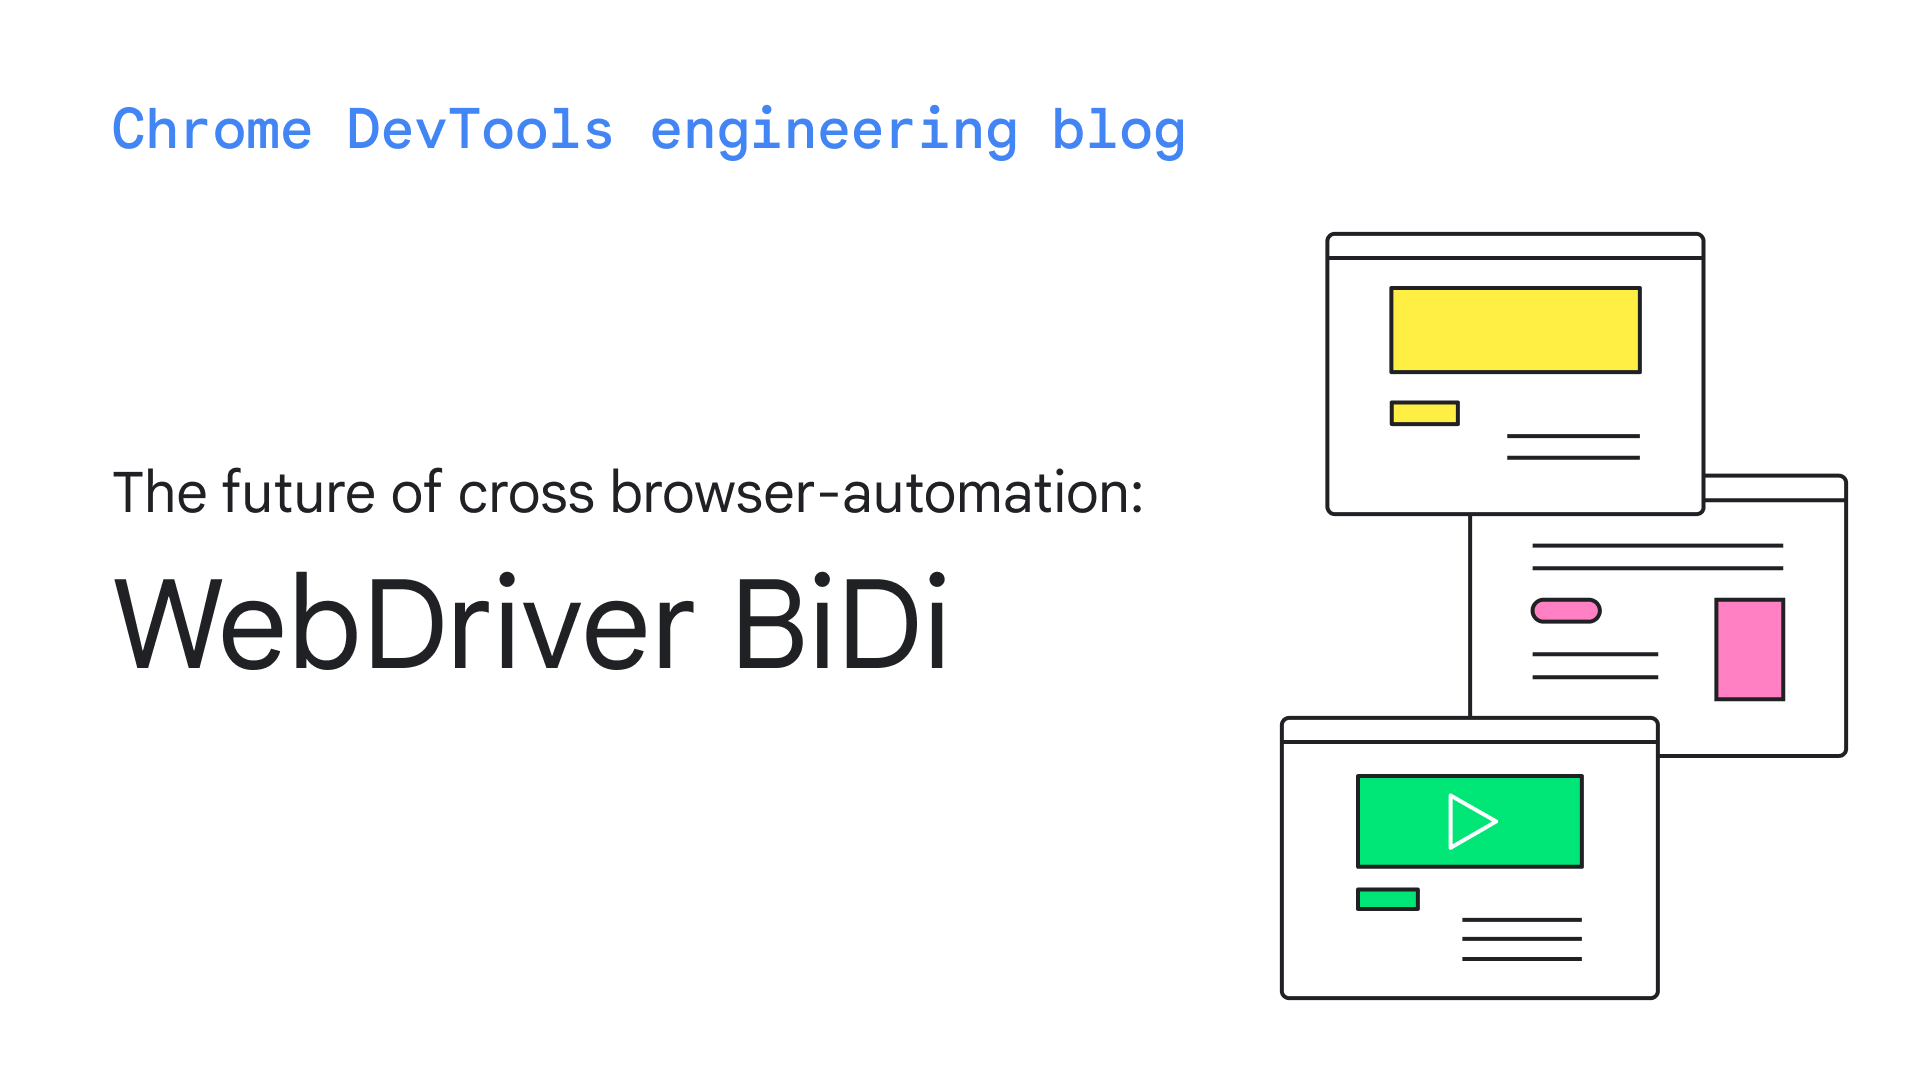 WebDriver BiDi - The future of cross-browser automation